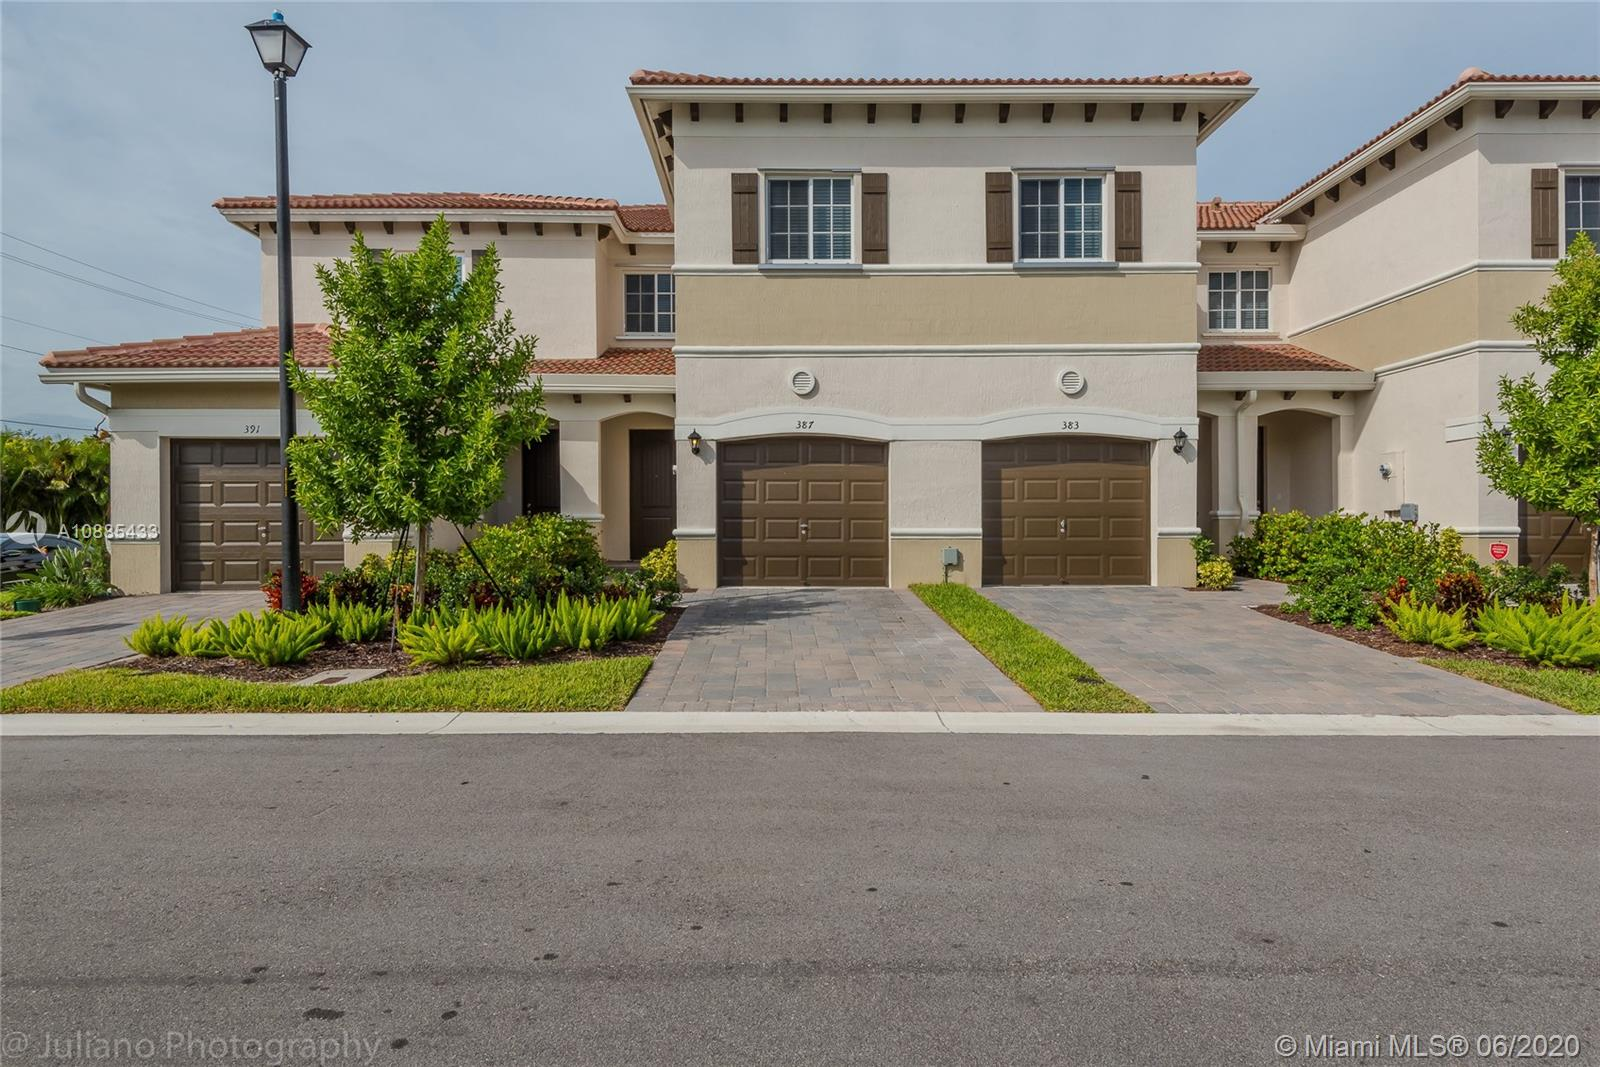 THE BRAND NEW COMMUNITY CLOSE TO THE BEACHES AND MAIN ROADS. NICE TOWNHOME WITH COVERED PATIO AND GARDEN VIEW, 1 CAR GARAGE, AND 2 SPOTS OUTSIDE. MUST SEE!!! VERY MOTIVATED OWNER!!!